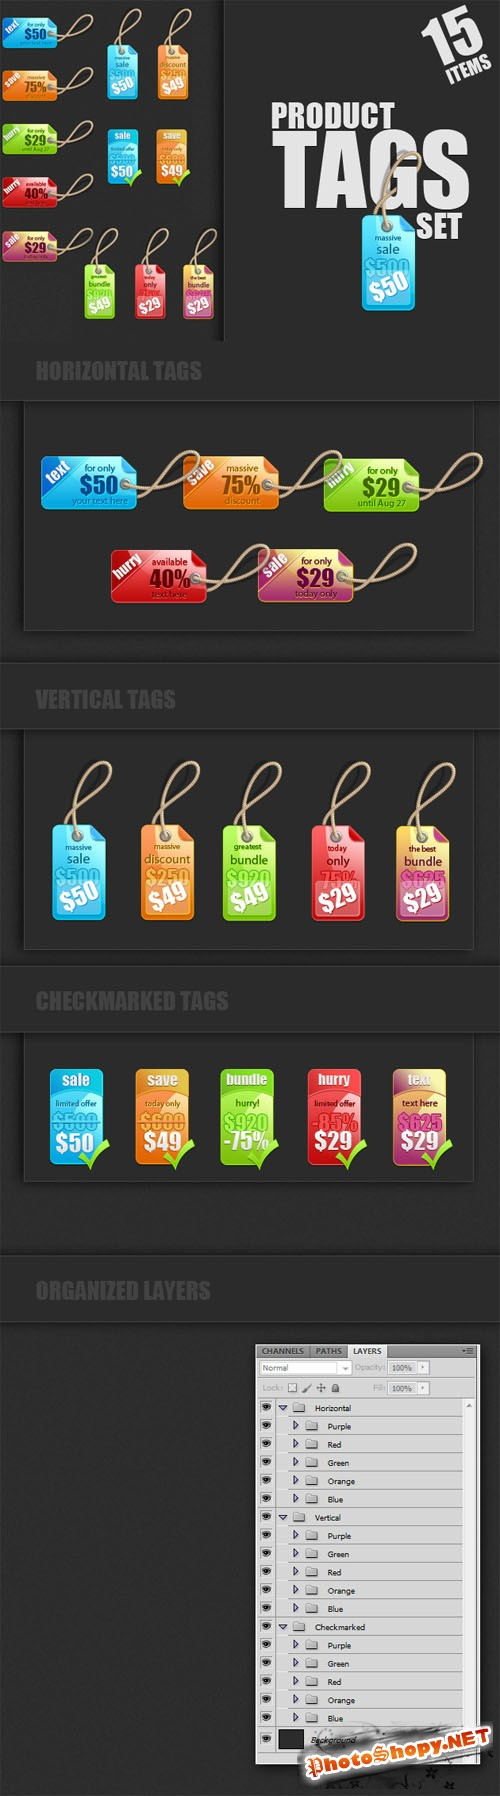 Designtnt - Product Tags for Photoshop